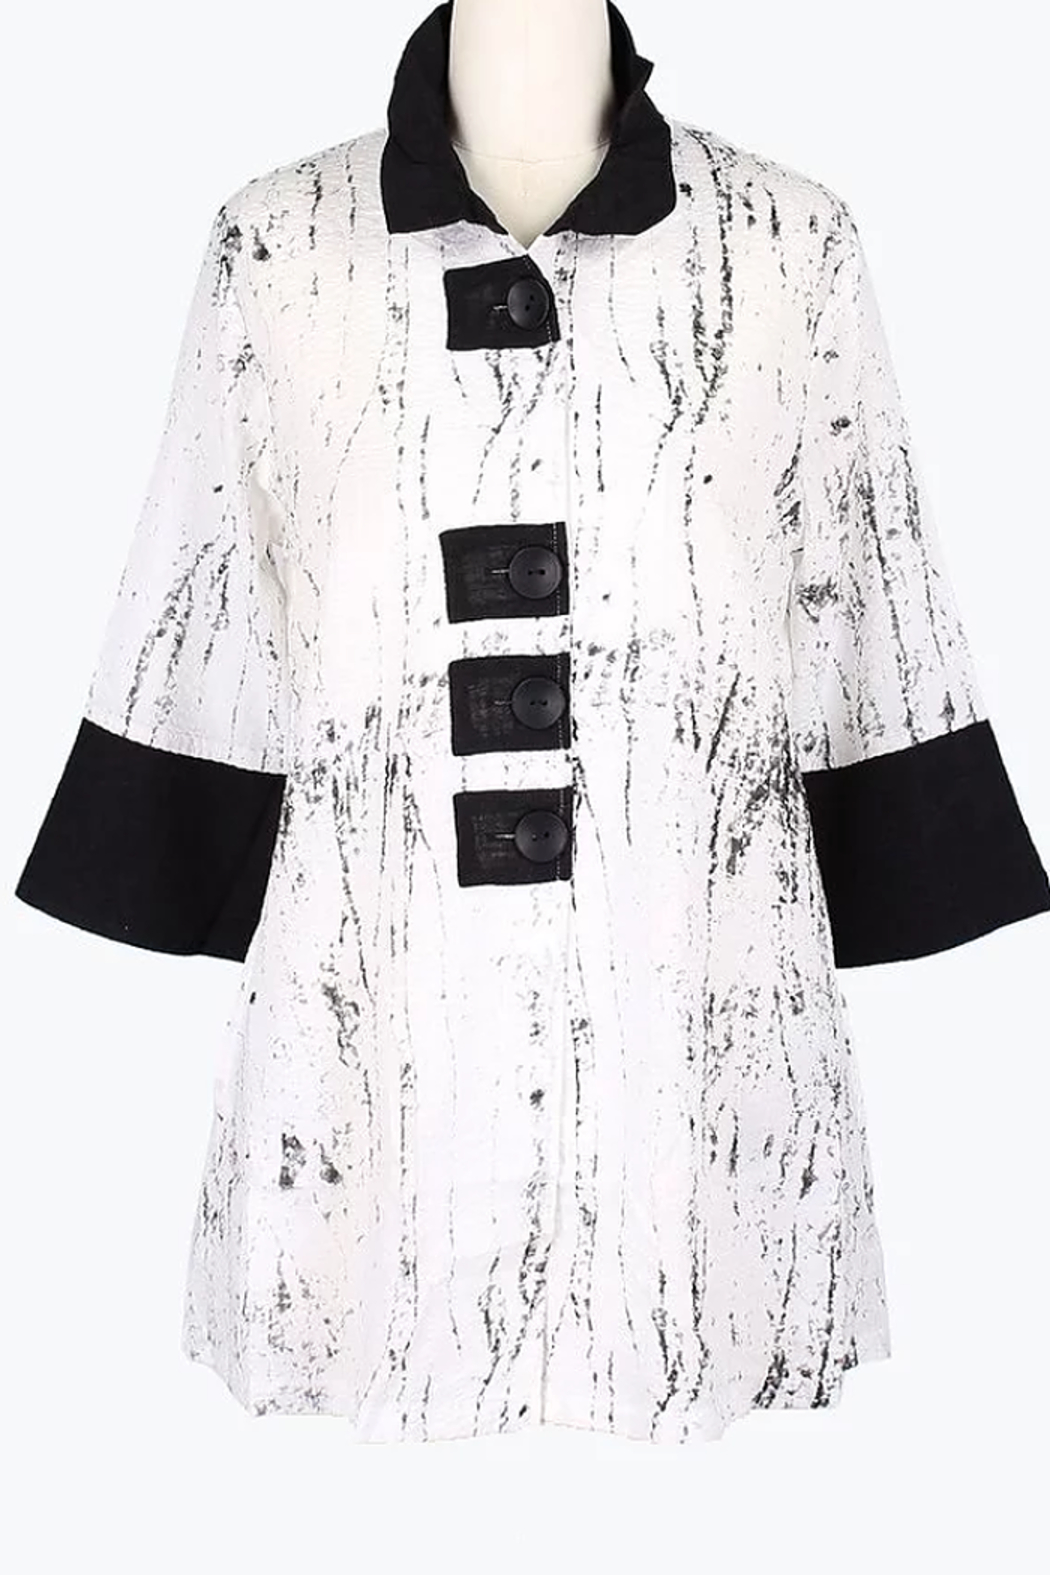 Damee Marble Patch Jacket - Main Image